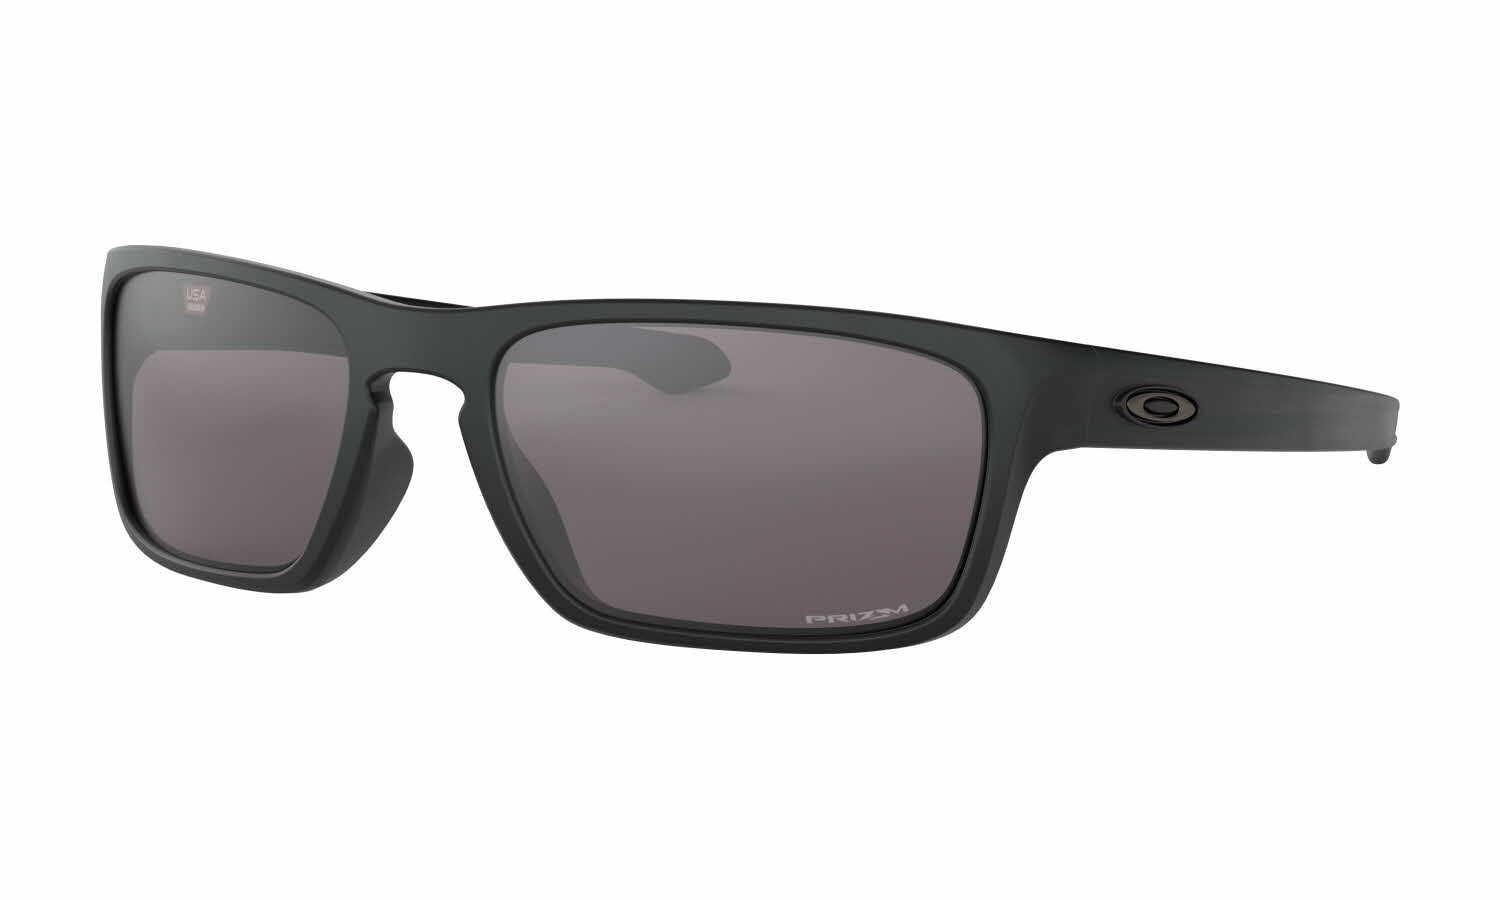 27f4cd58cf Oakley Sliver Stealth Sunglasses Oakley Sliver Stealth in Matte Black with  PRIZM Grey lens